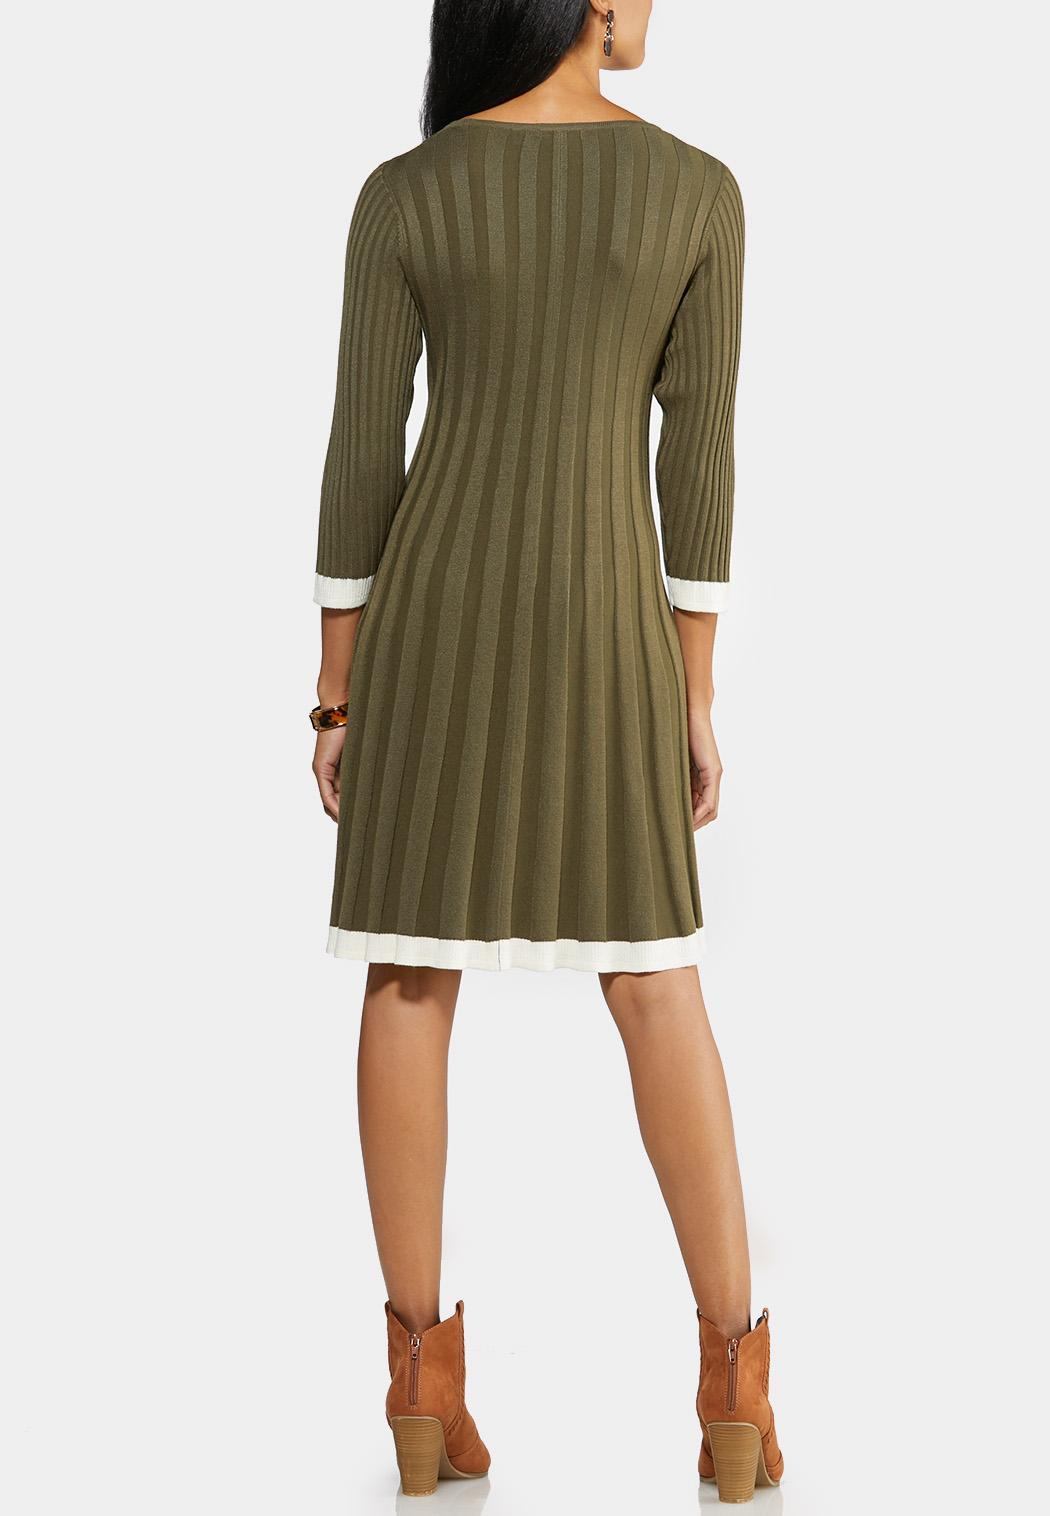 Plus Size Ribbed Knit Swing Dress (Item #43947635)